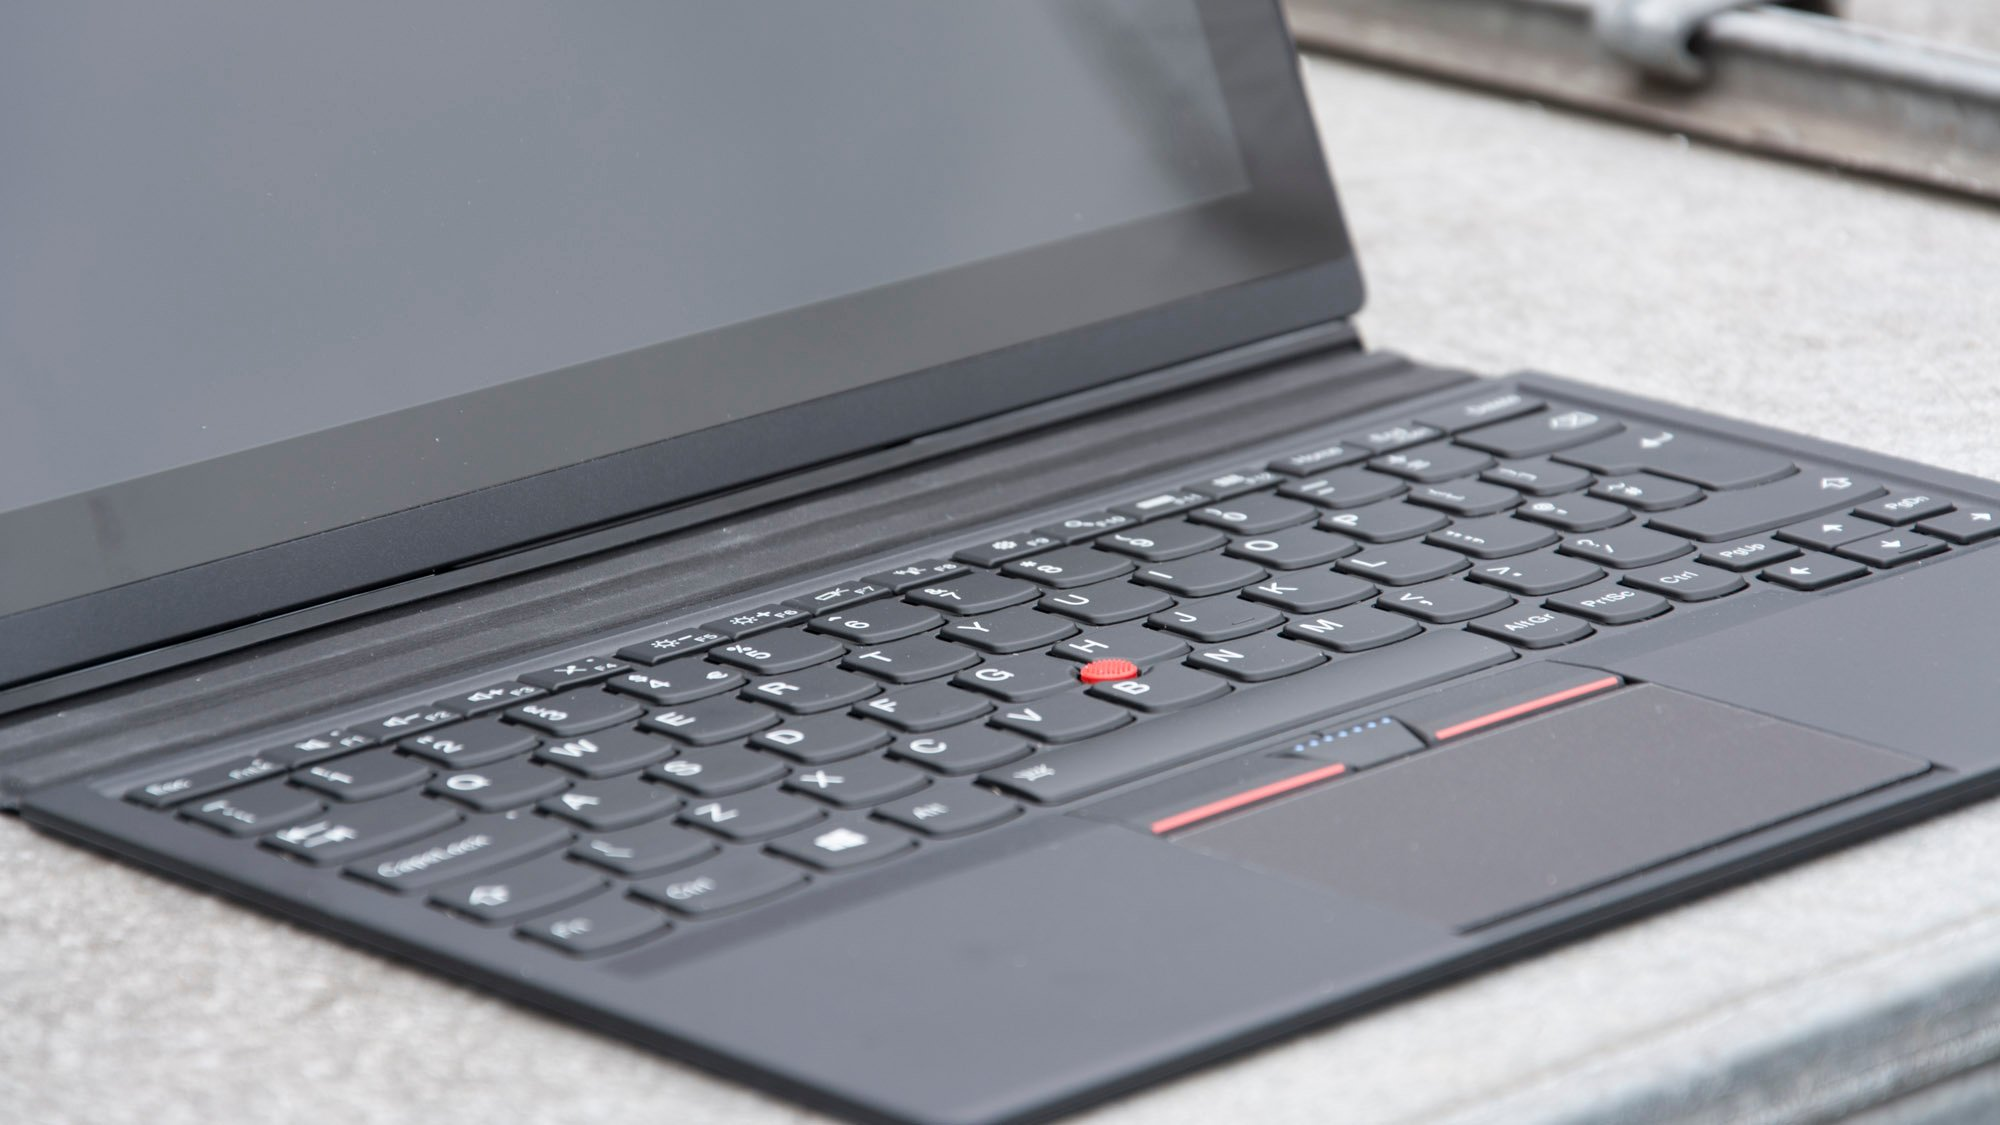 Lenovo ThinkPad X1 Tablet review: A Surface Pro 4 rival you